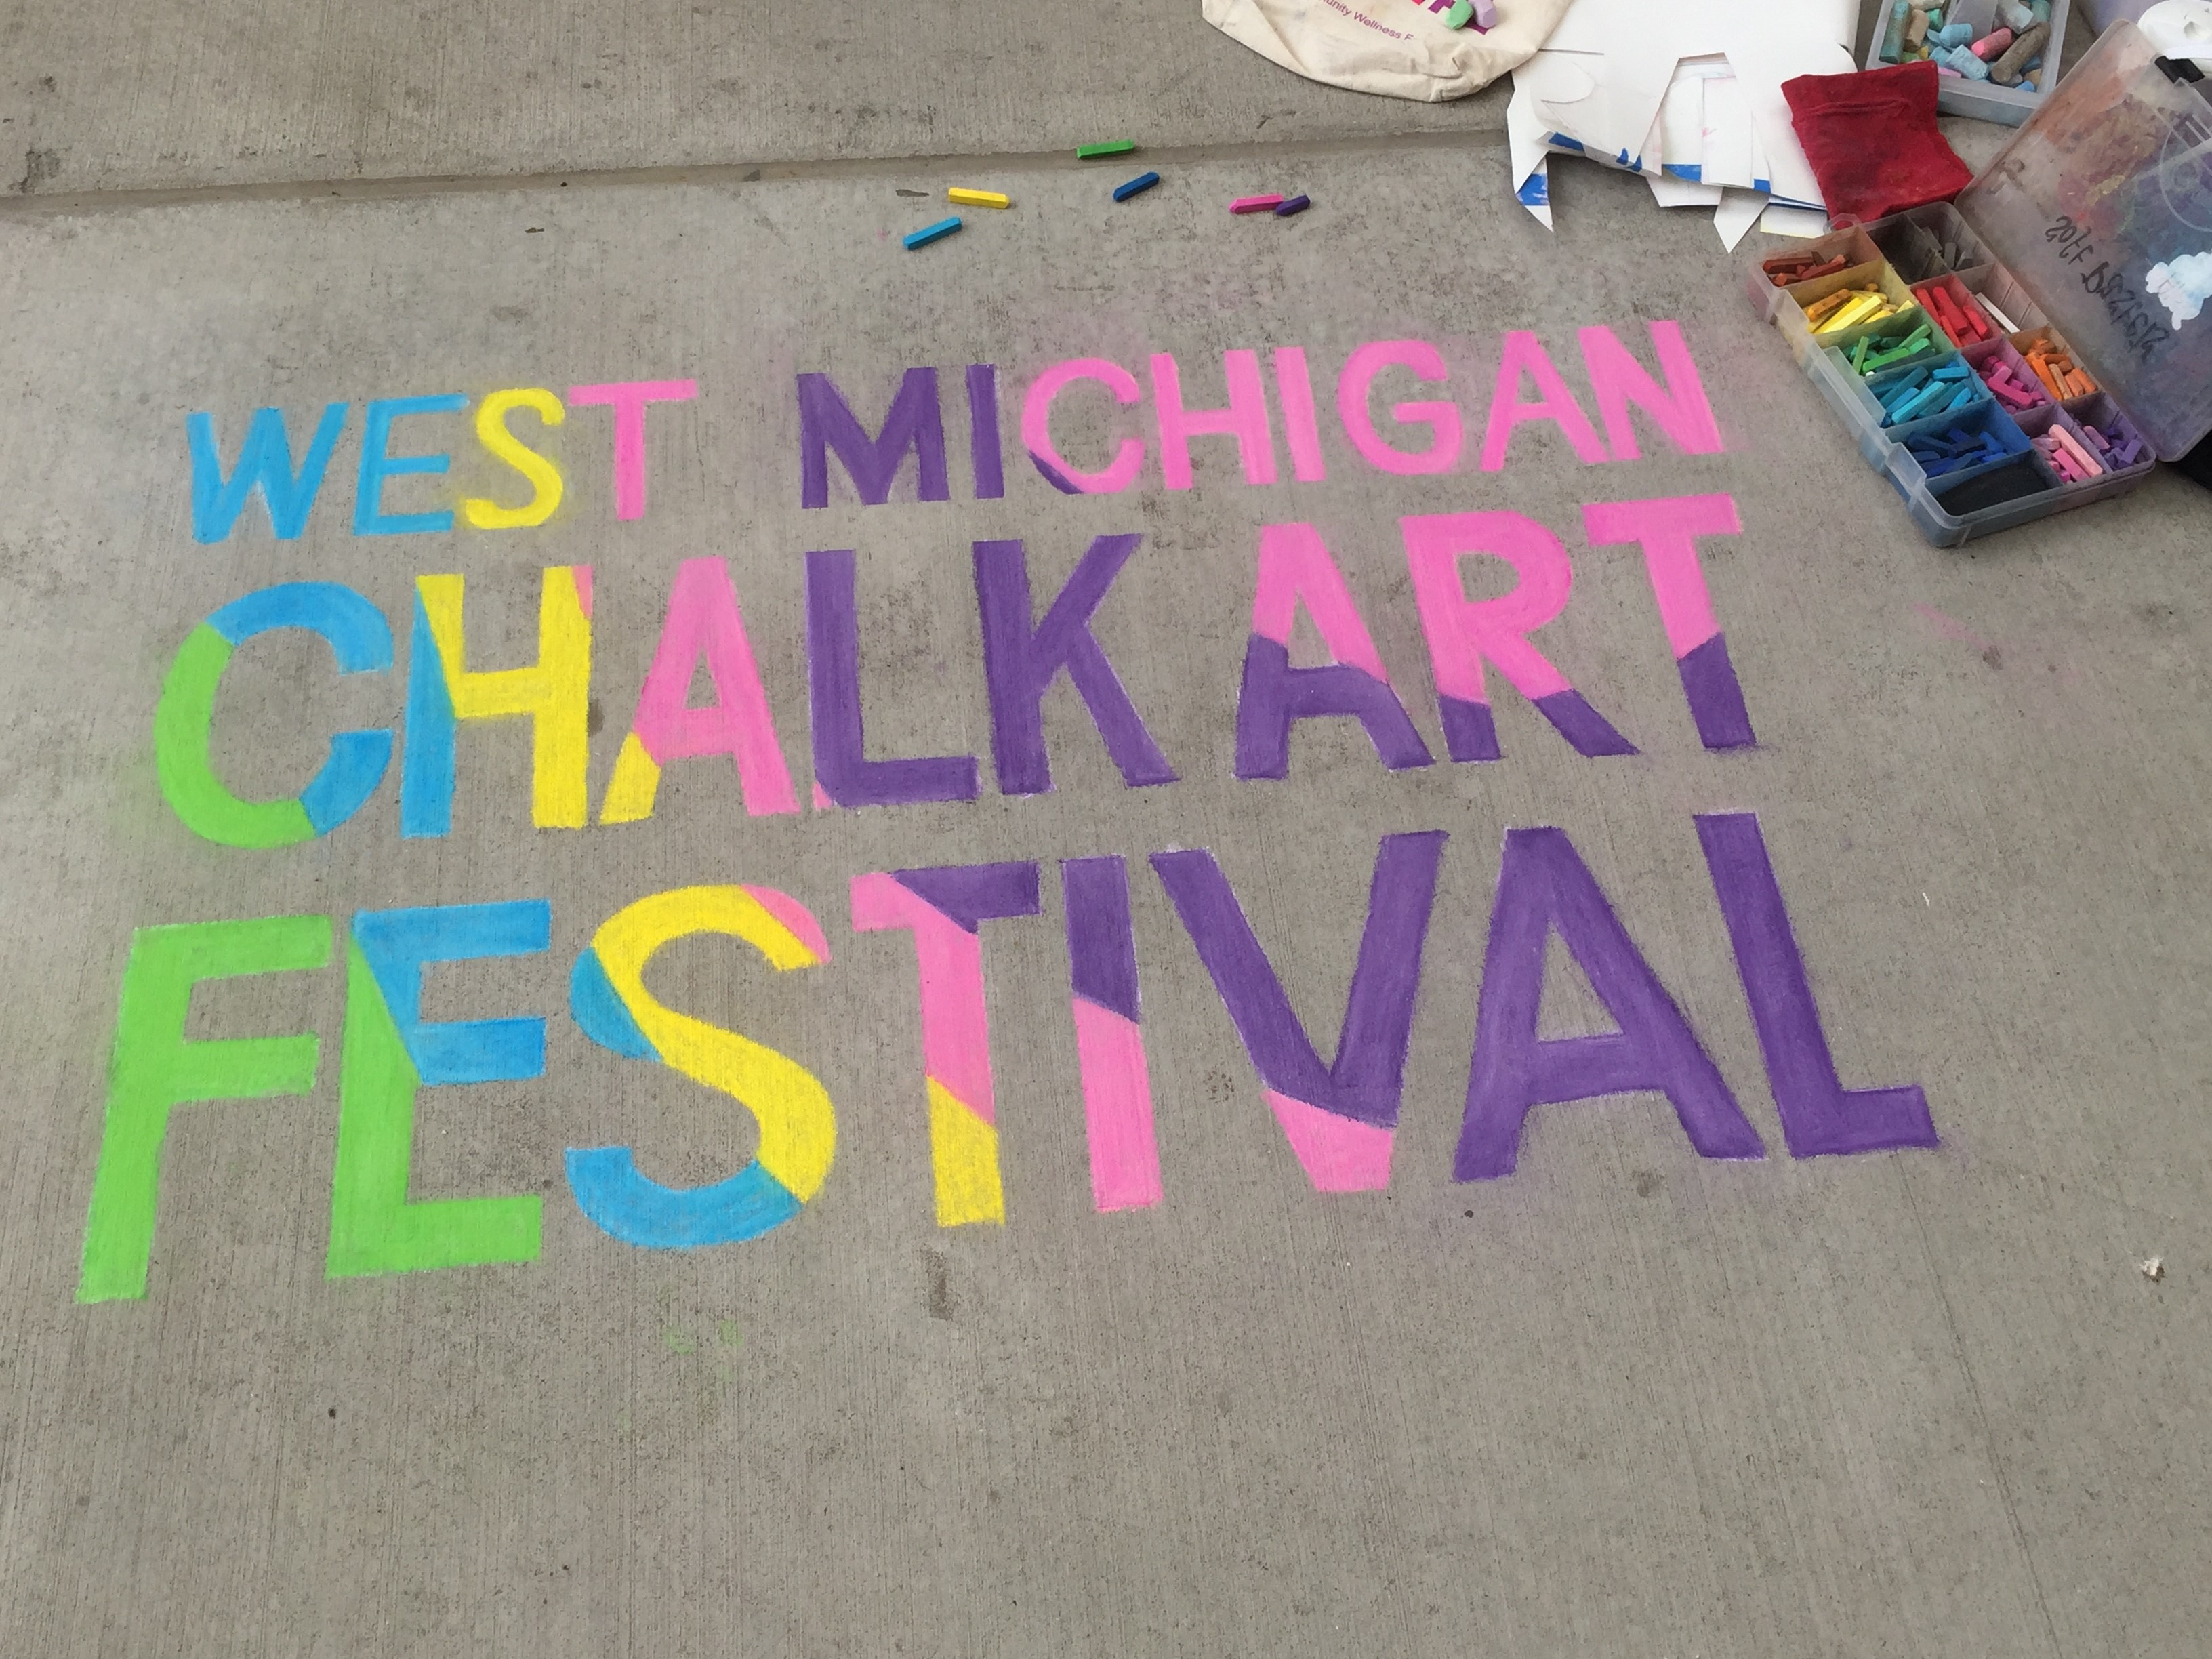 West michigan chalk art festival in its 8th year for Craft show in michigan